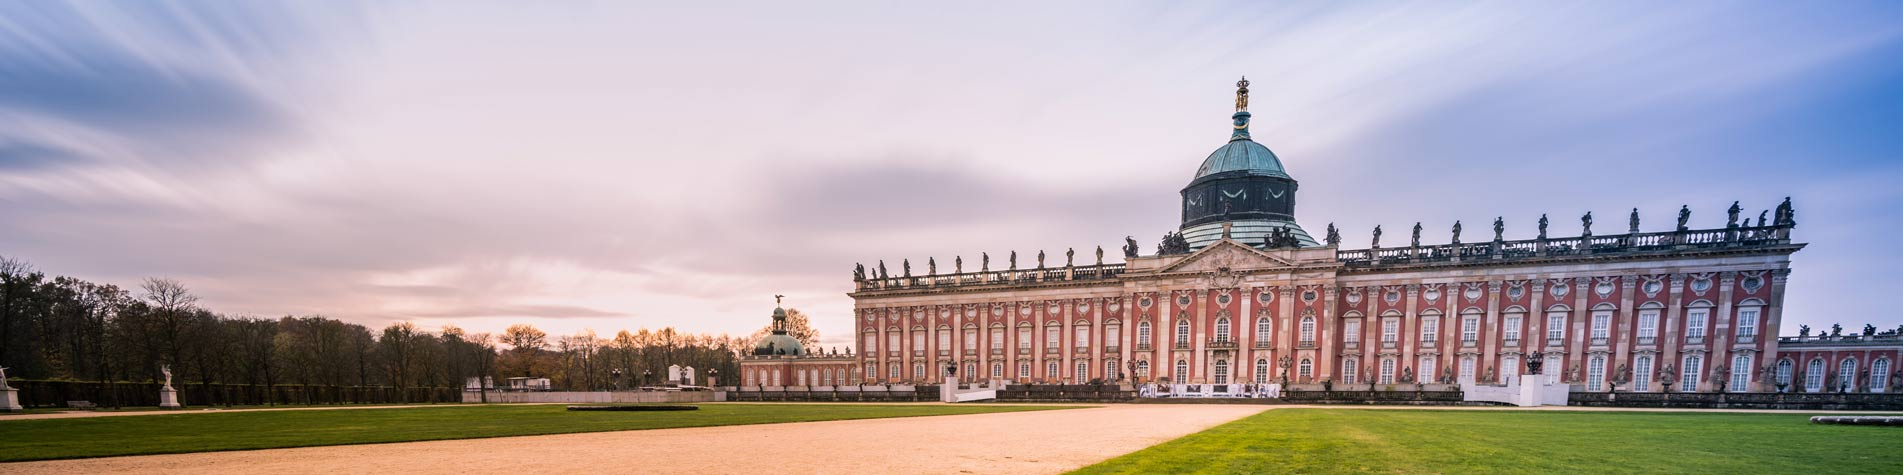 Sunset-with-Sanssouci-Palace-in-Potsdam-Germany